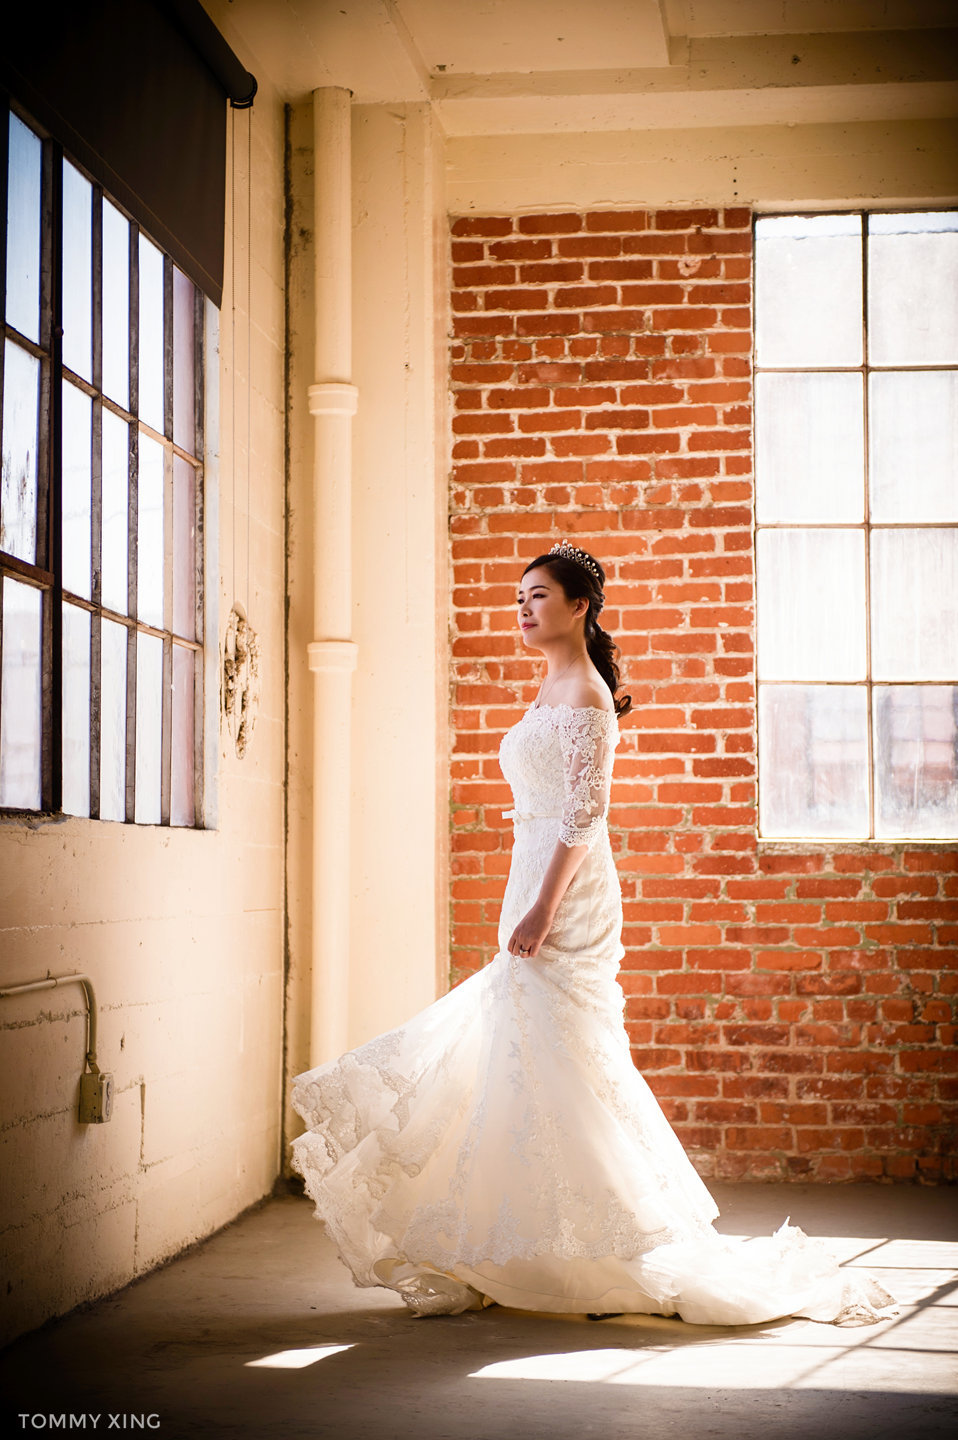 San Francisco Wedding Photo 旧金山湾区婚纱照 Tommy Xing Photography 洛杉矶 05.jpg